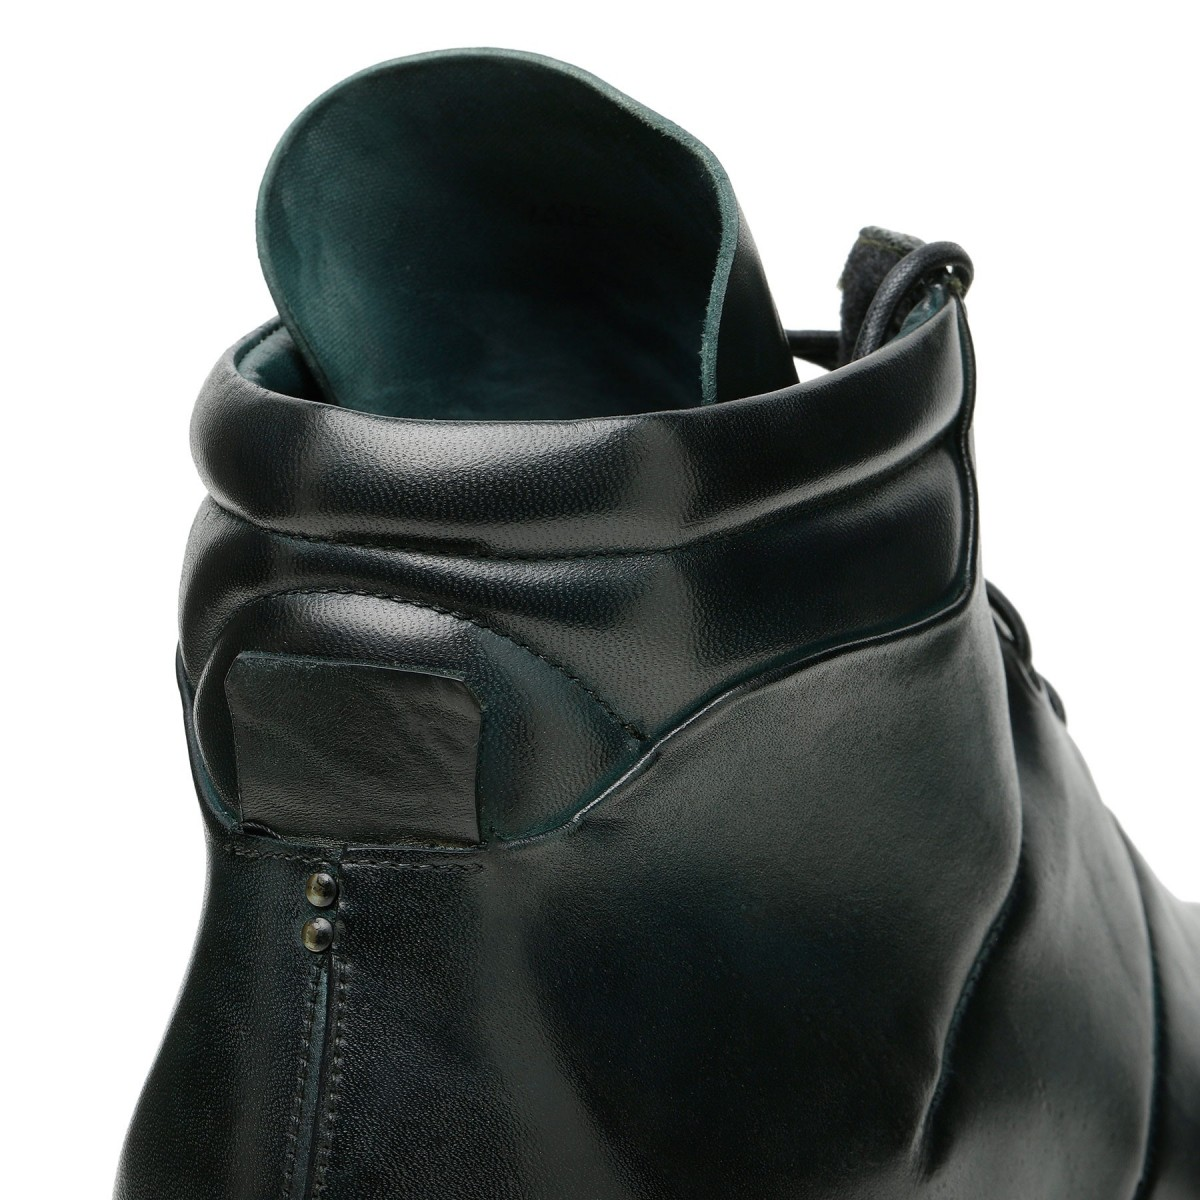 Dark green leather booties